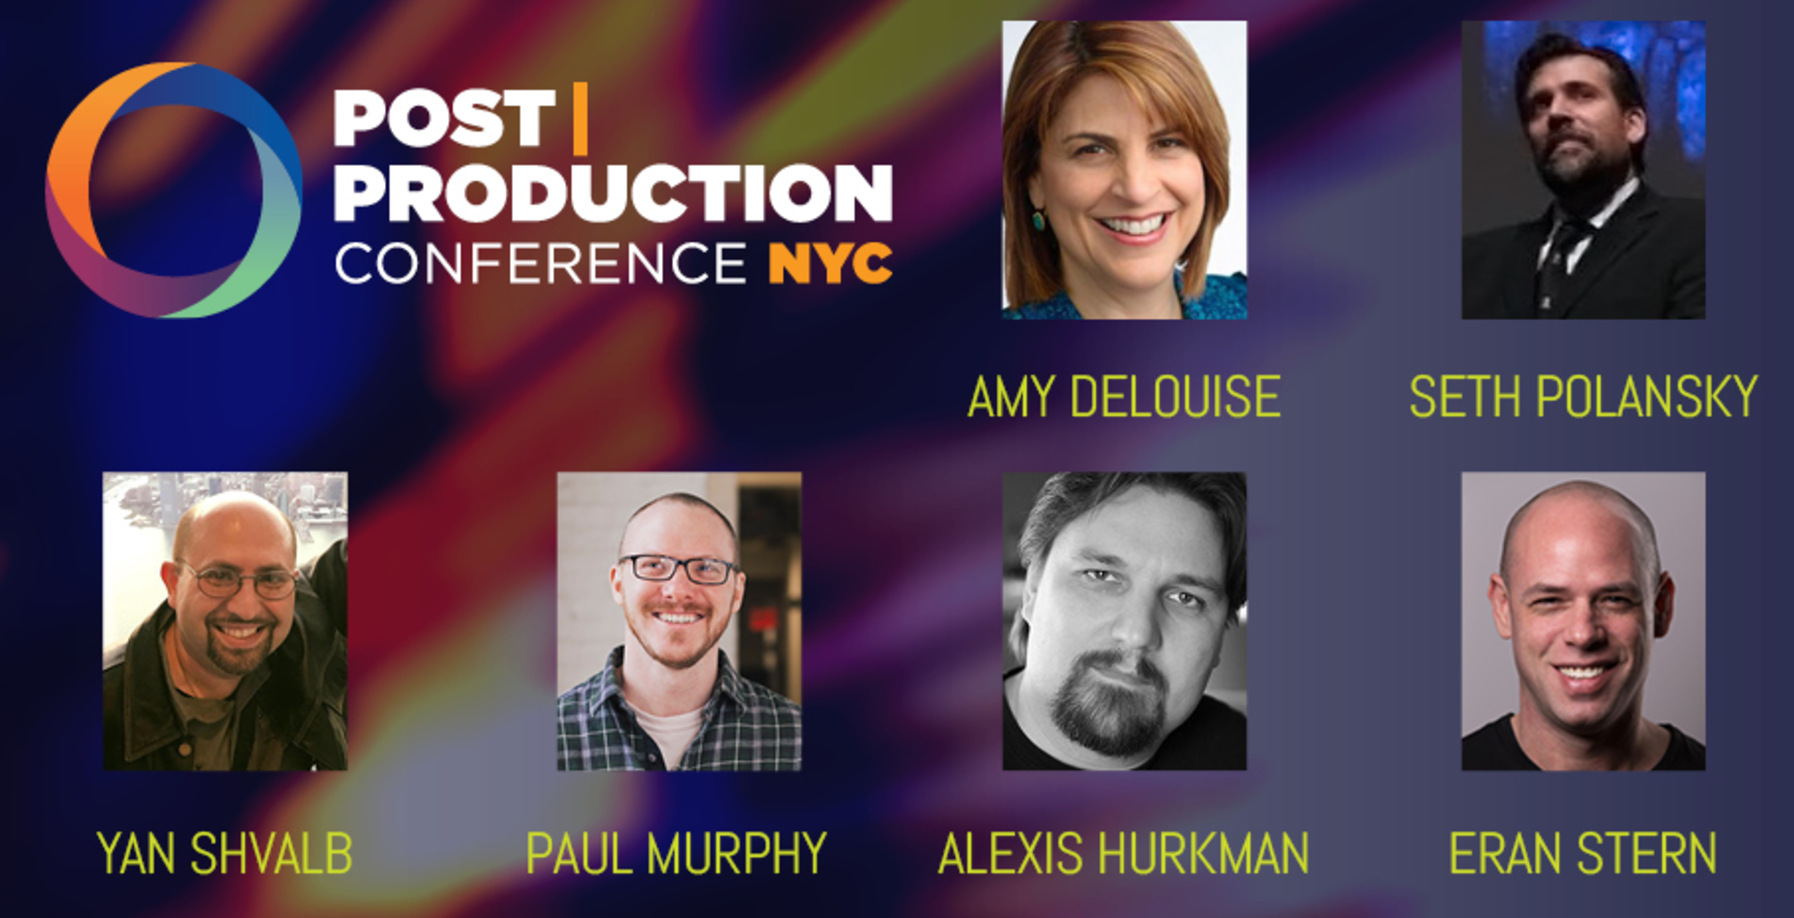 NYC - NEW YORK POST|PRODUCTION CONFERENCE @ NAB Show 2017 @ JAVITS CONVENTION CENTER | New York | New York | United States